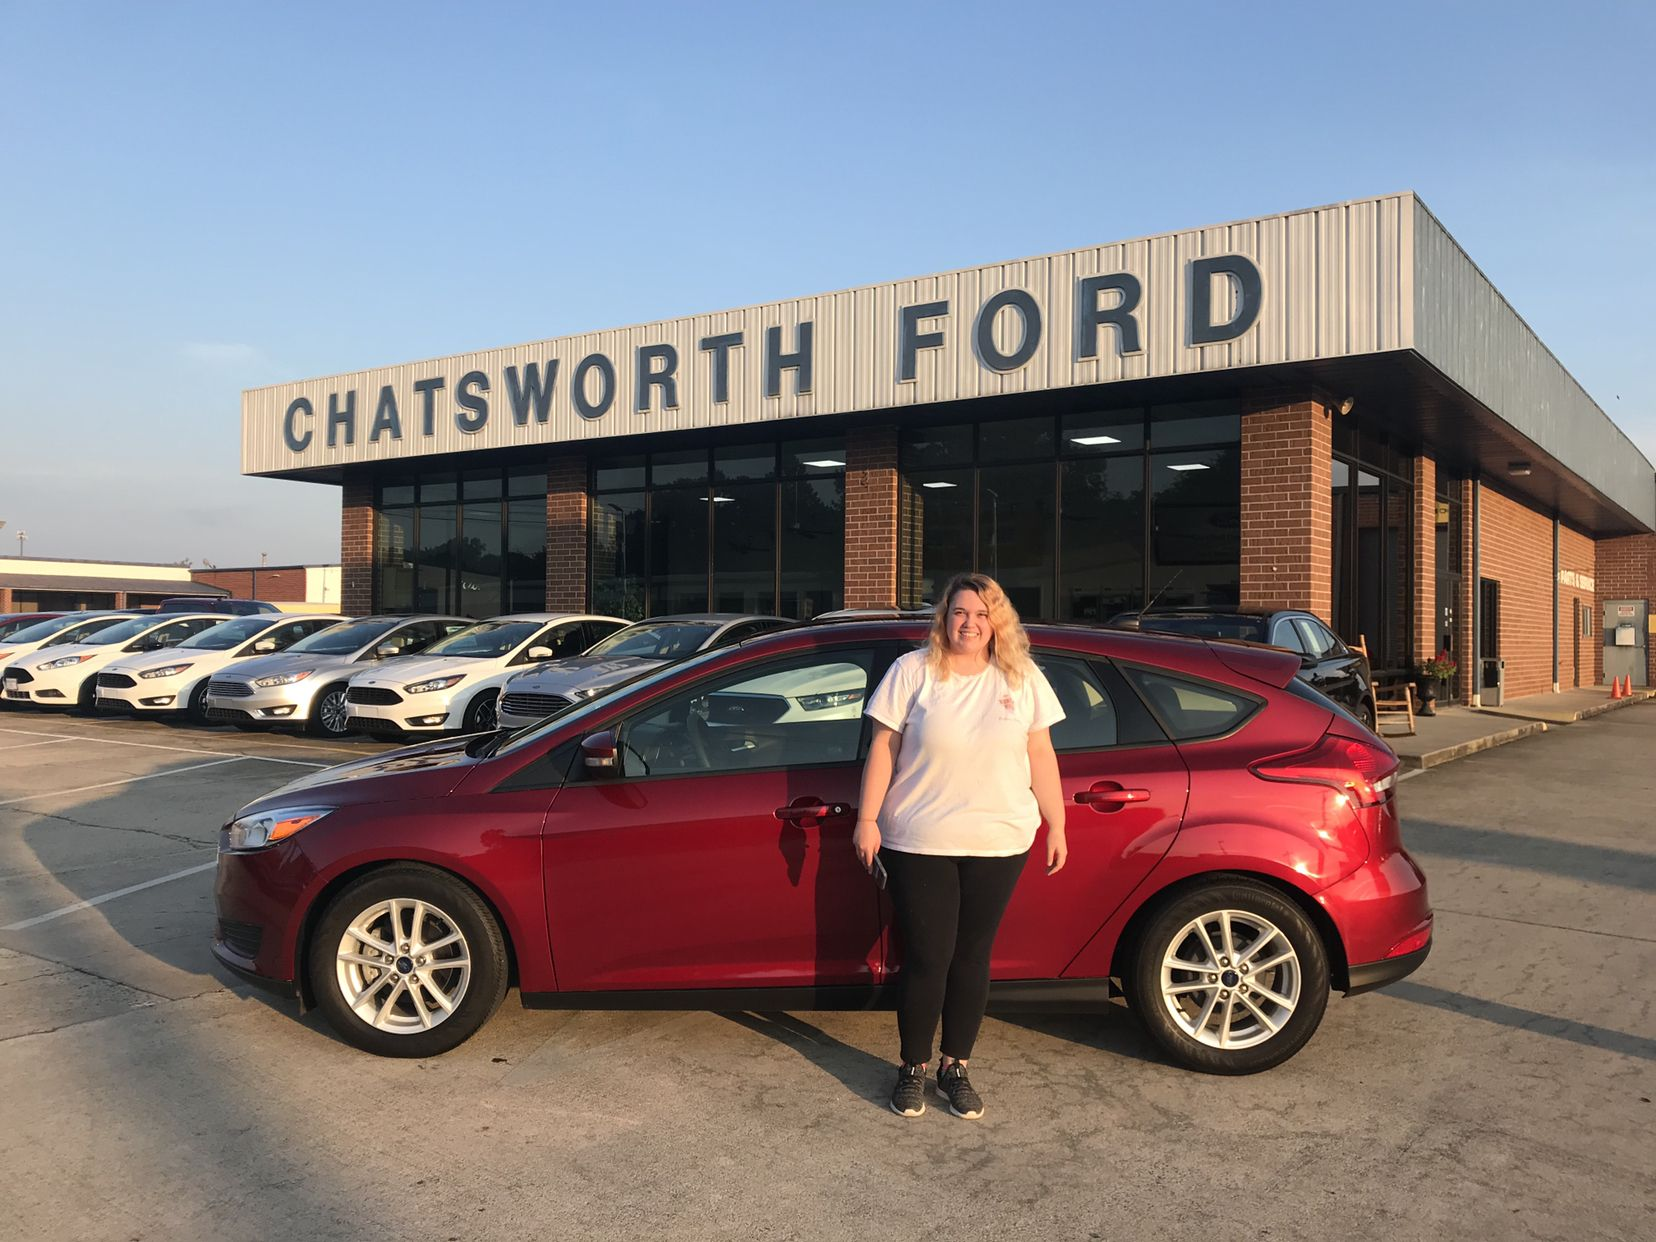 congratulations talara head if chatsworth ga on your new 2016 focus sold by jared langham and cory sims we appreciate your business ford news chatsworth ford pinterest